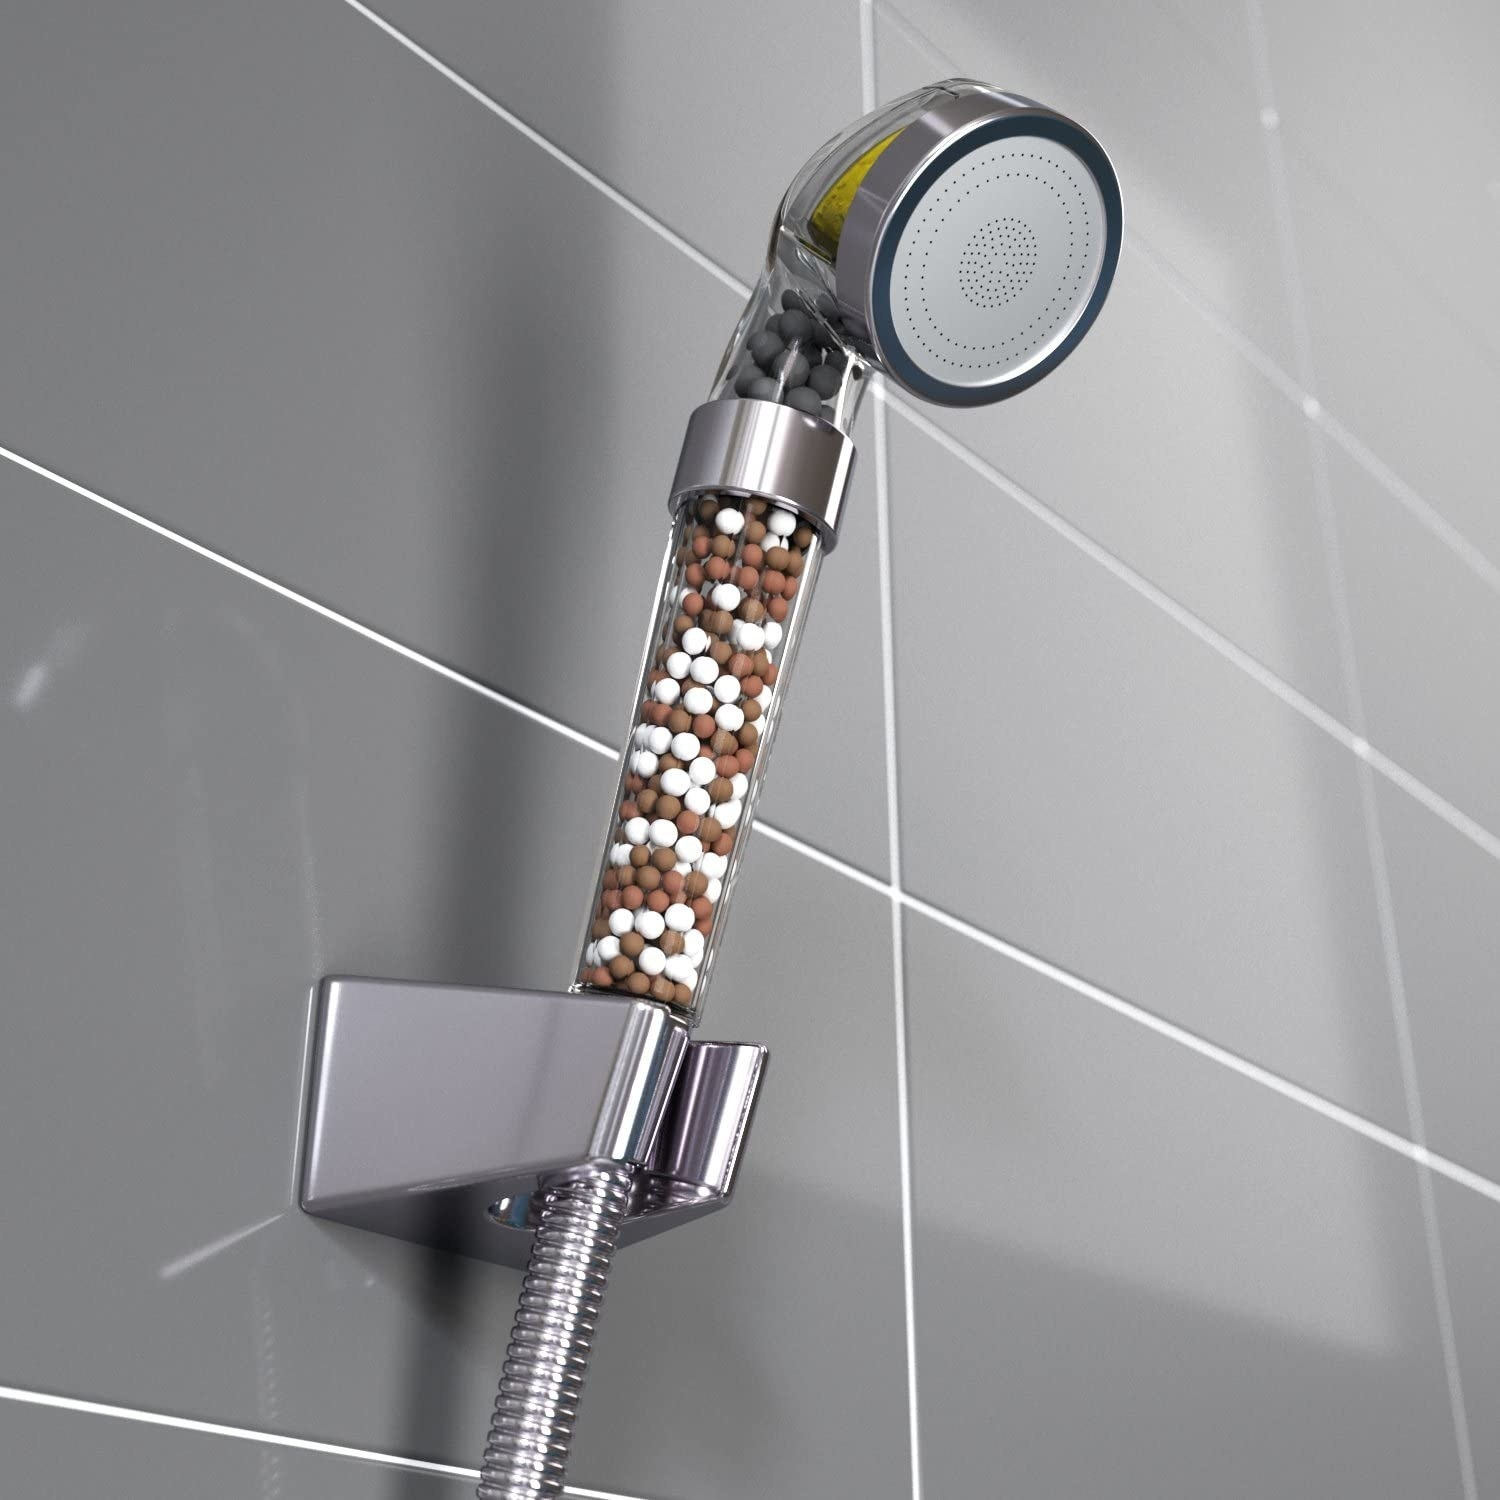 The showerhead filled with filter beads